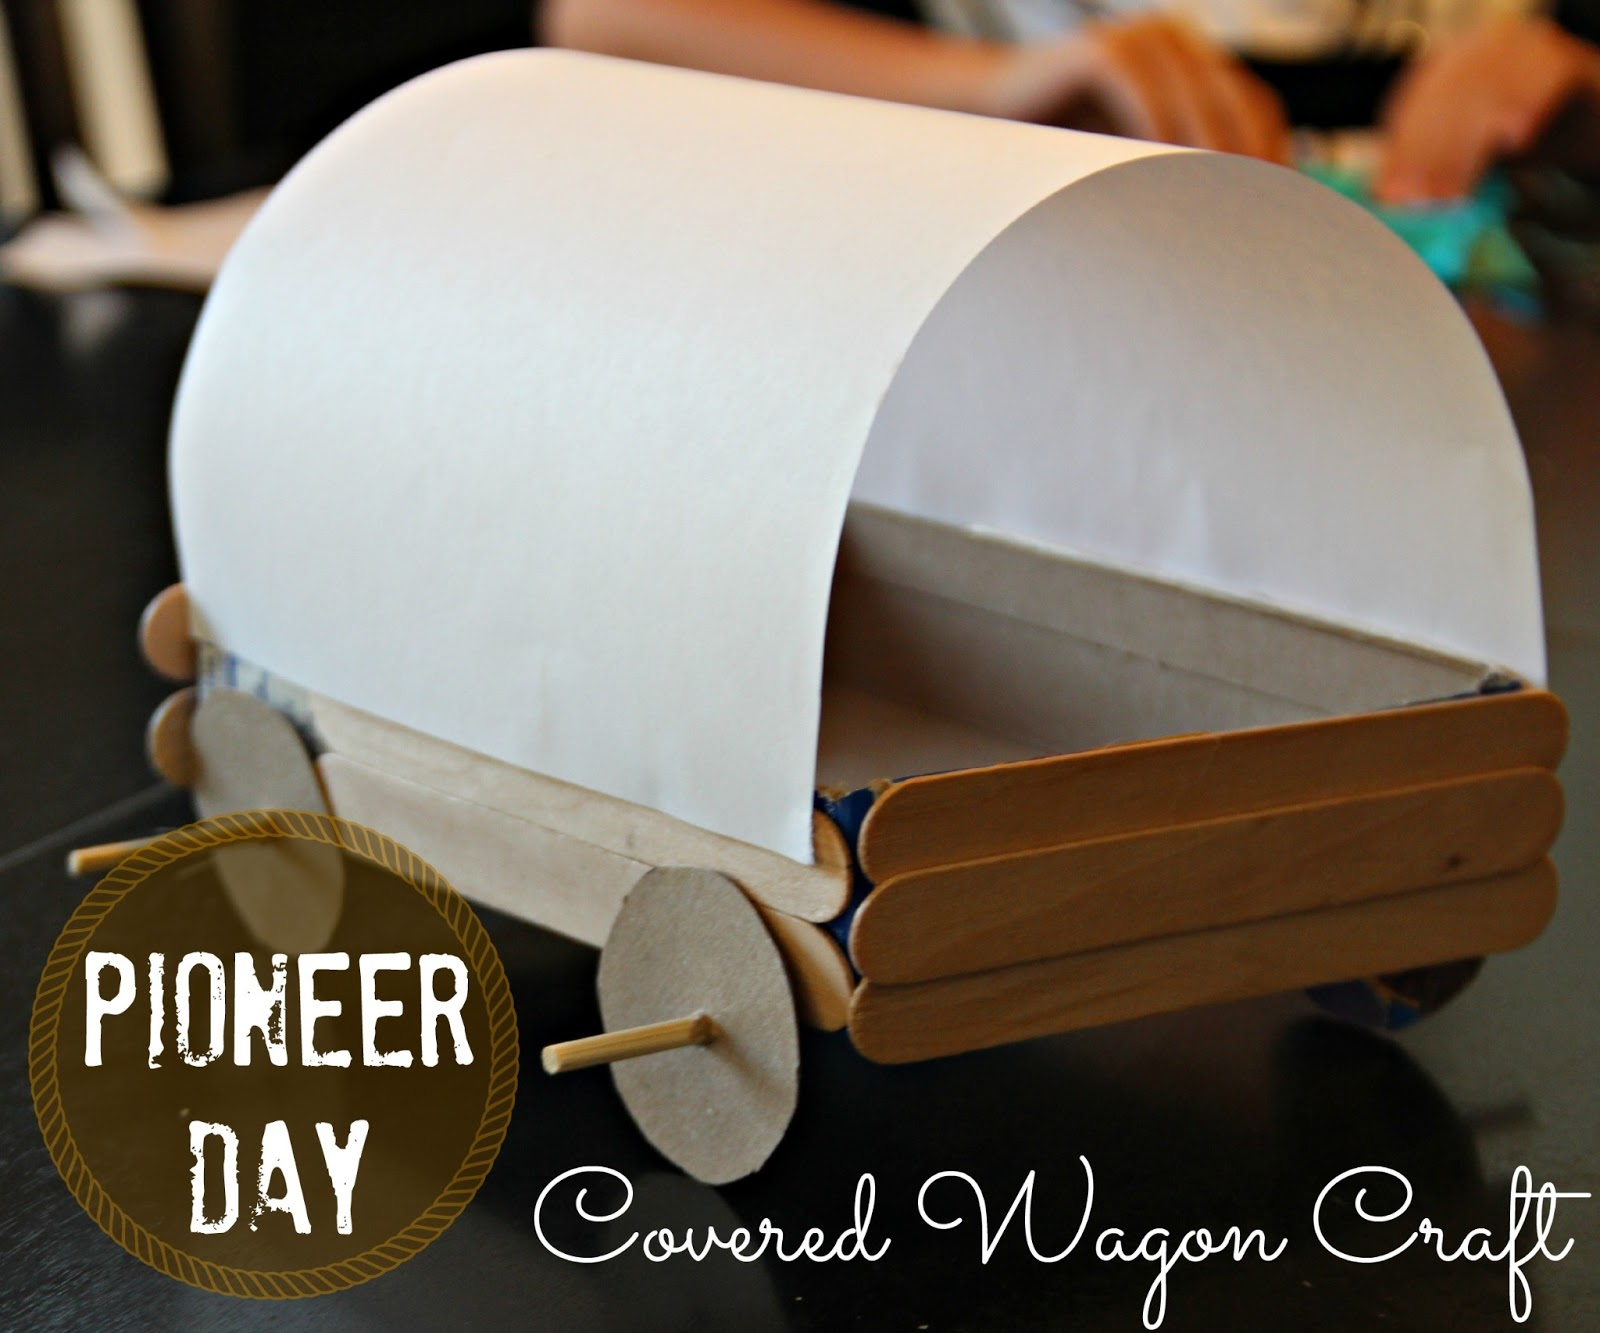 Blue Skies Ahead Pioneer Day Covered Wagon Craft